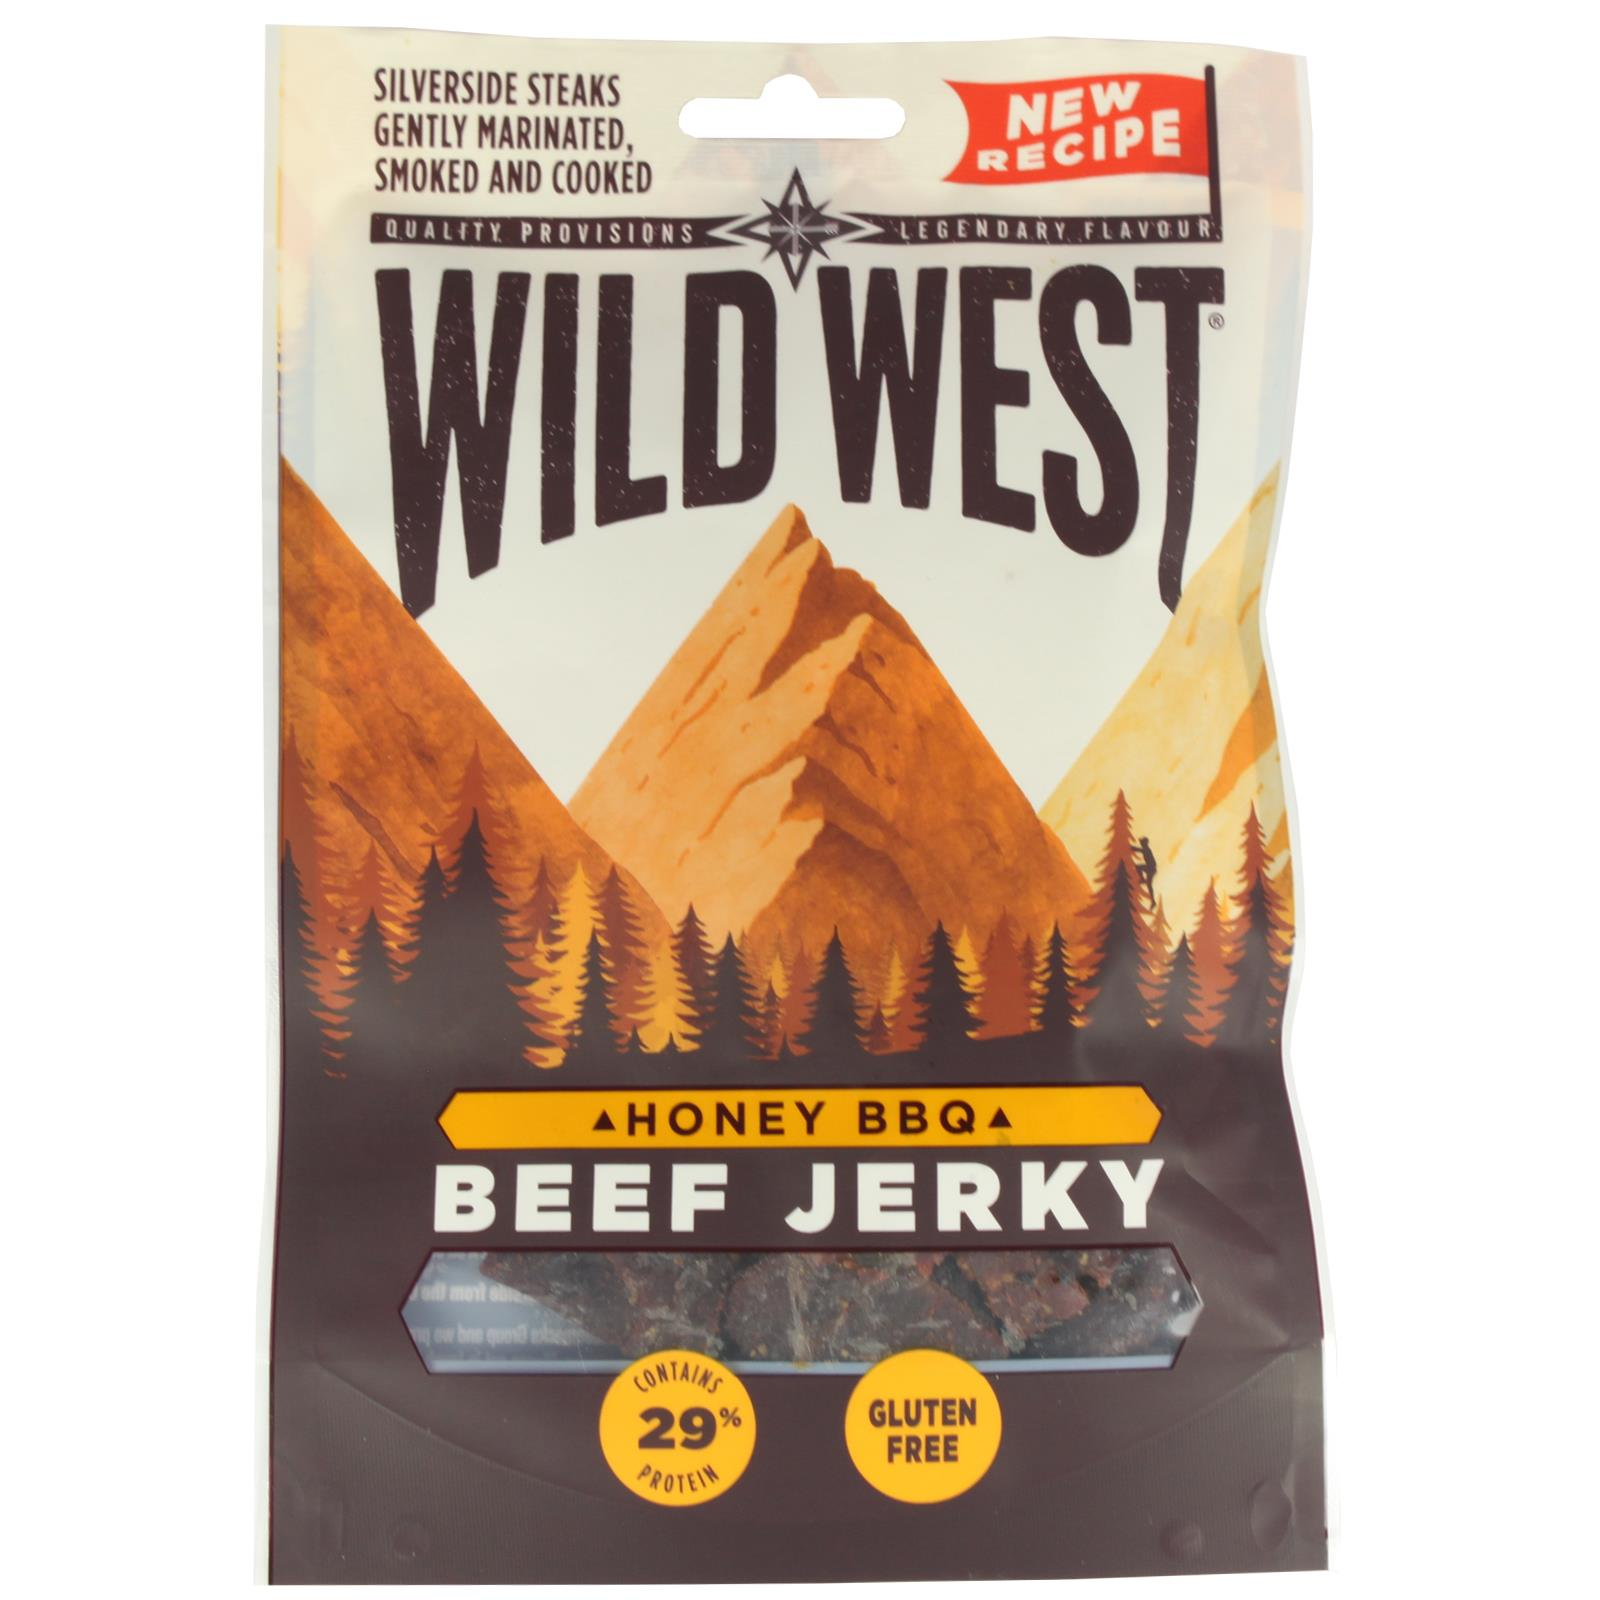 Wild-West-Beef-Jerky-All-Flavours-Mixed-Packs-Gluten-Free-High-Protein-Snack miniatura 5